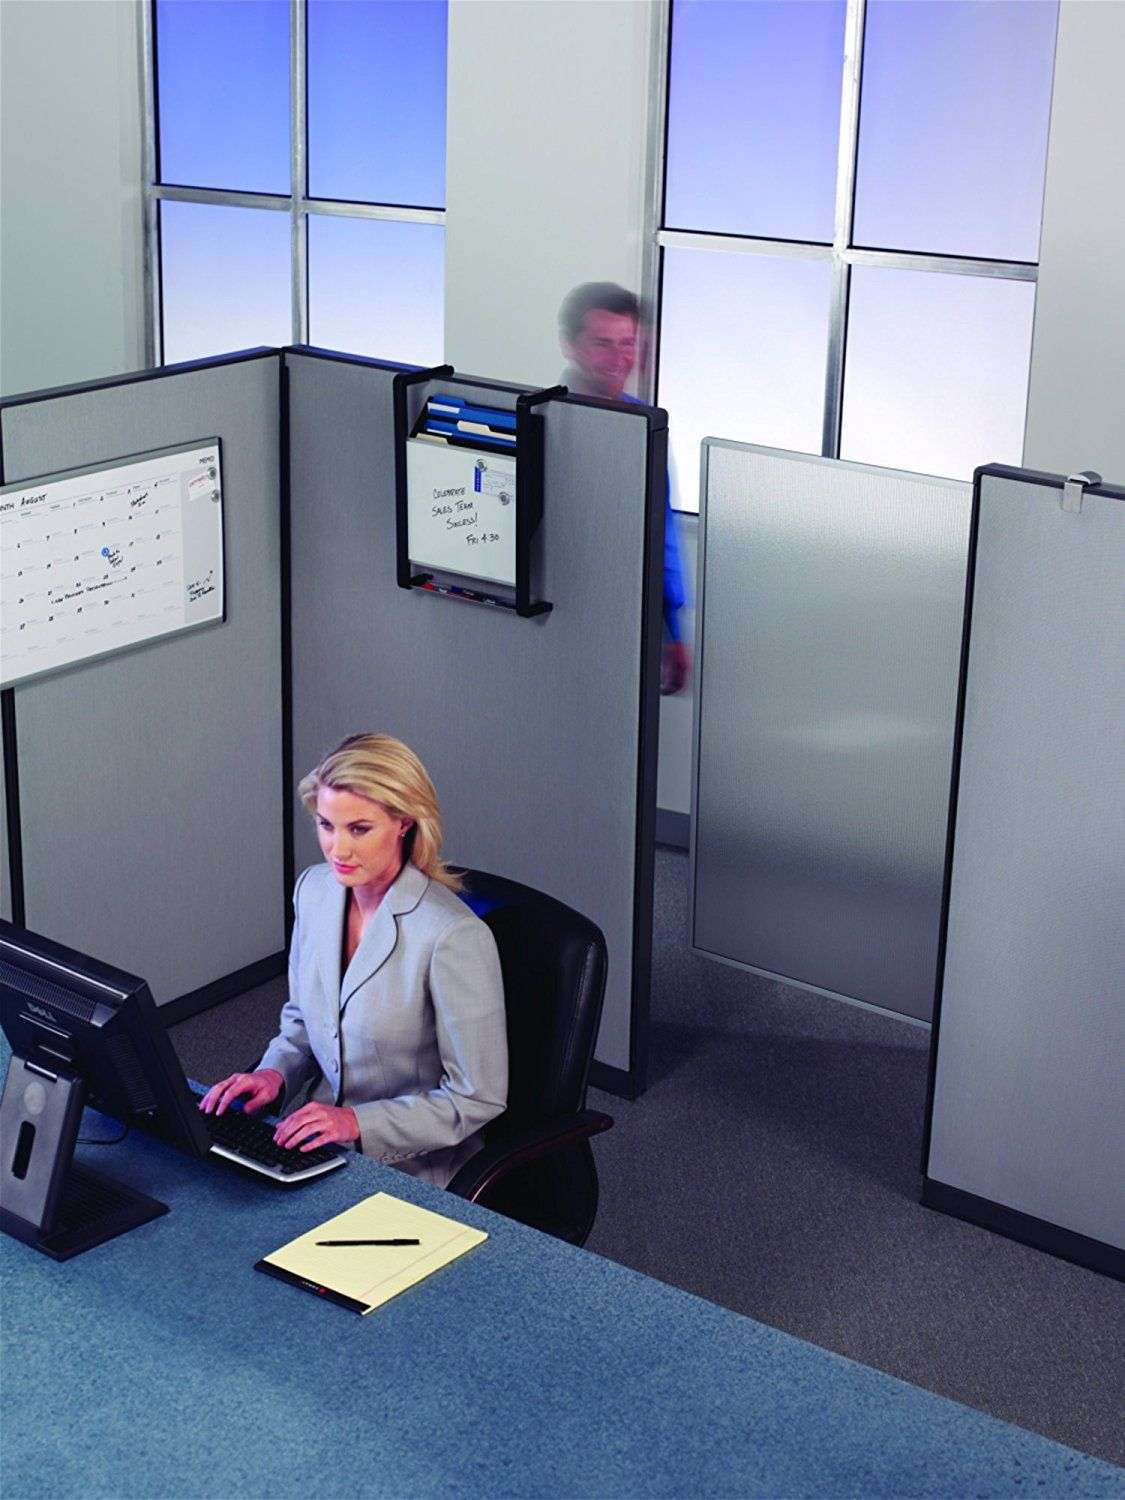 This privacy screen easily attaches to your cubicle